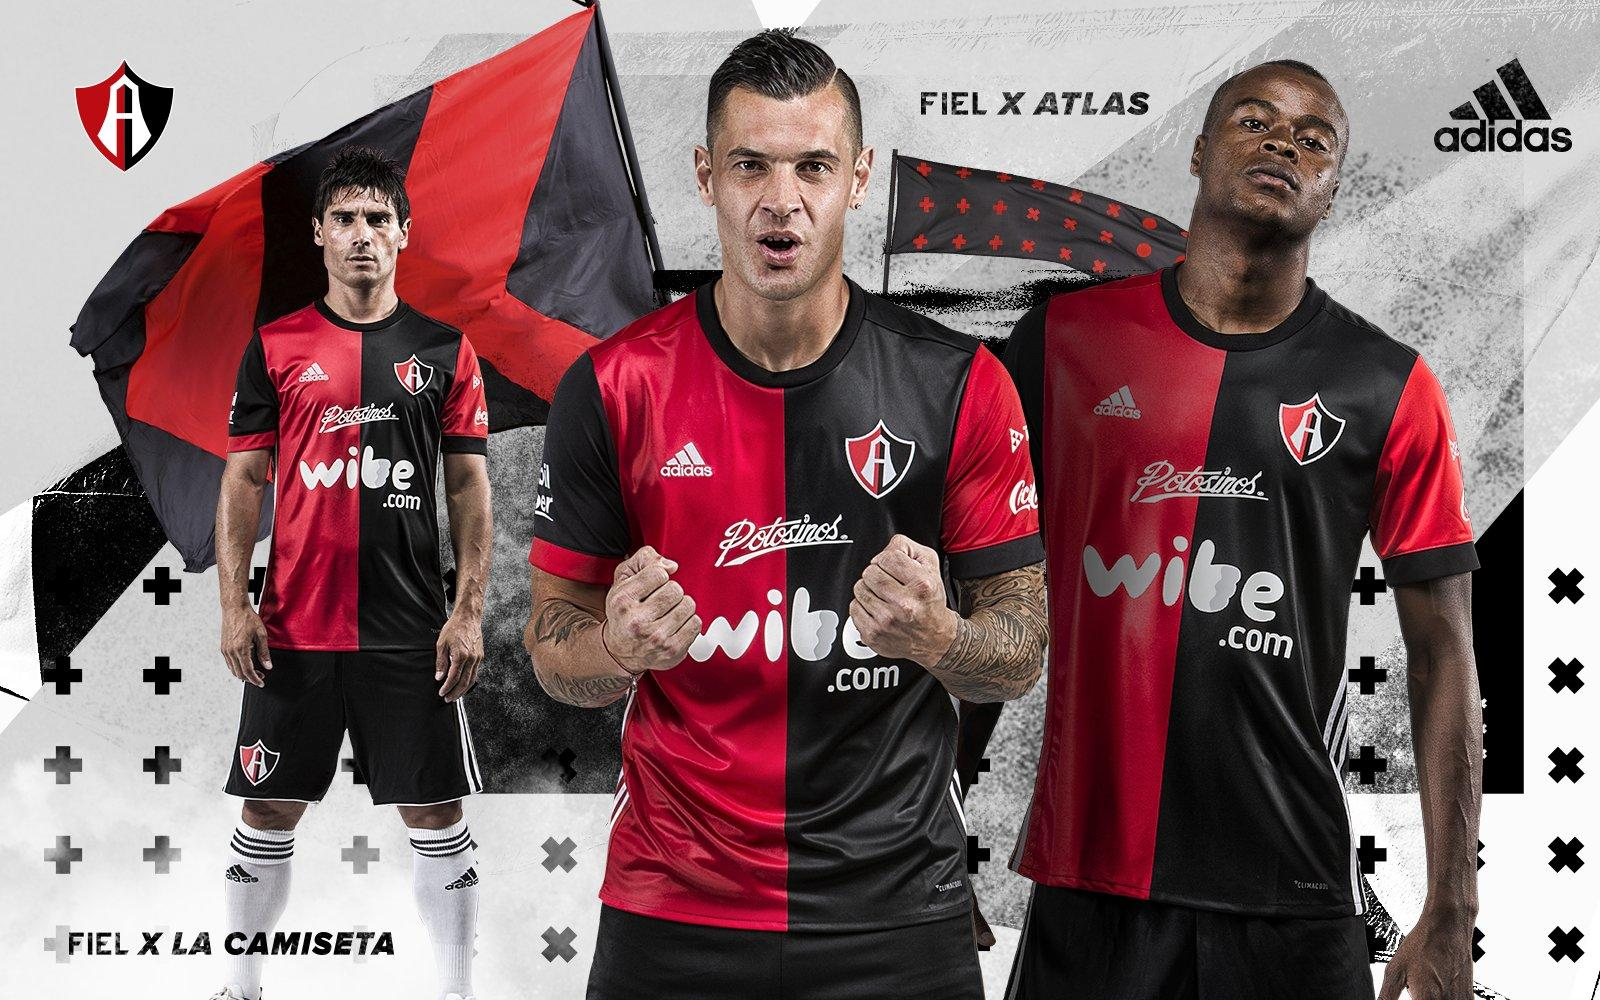 This is the new Adidas Atlas FC 2017-2018 home shirt.